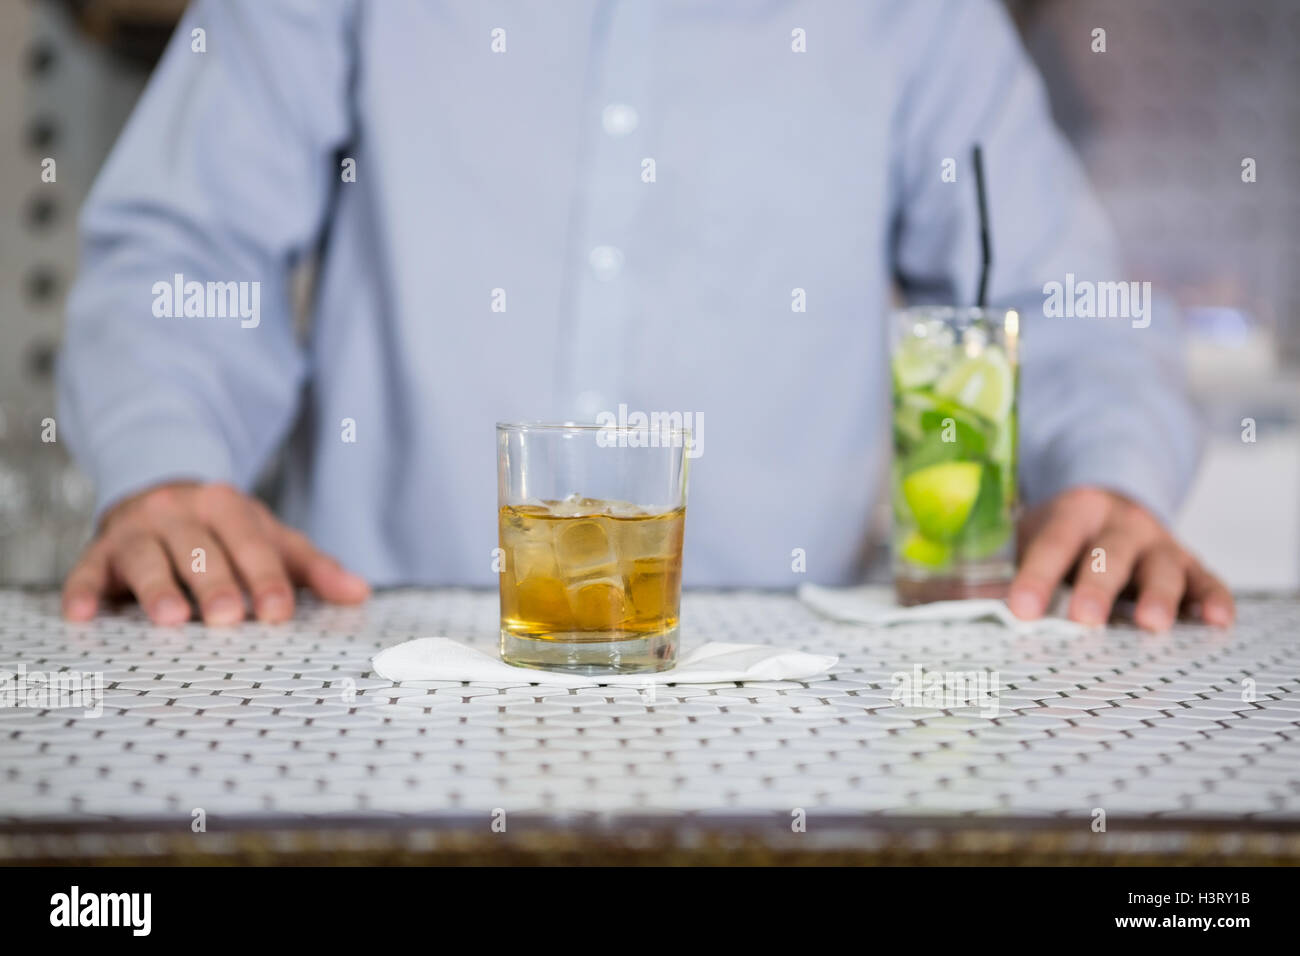 Glass of whisky on bar counter - Stock Image